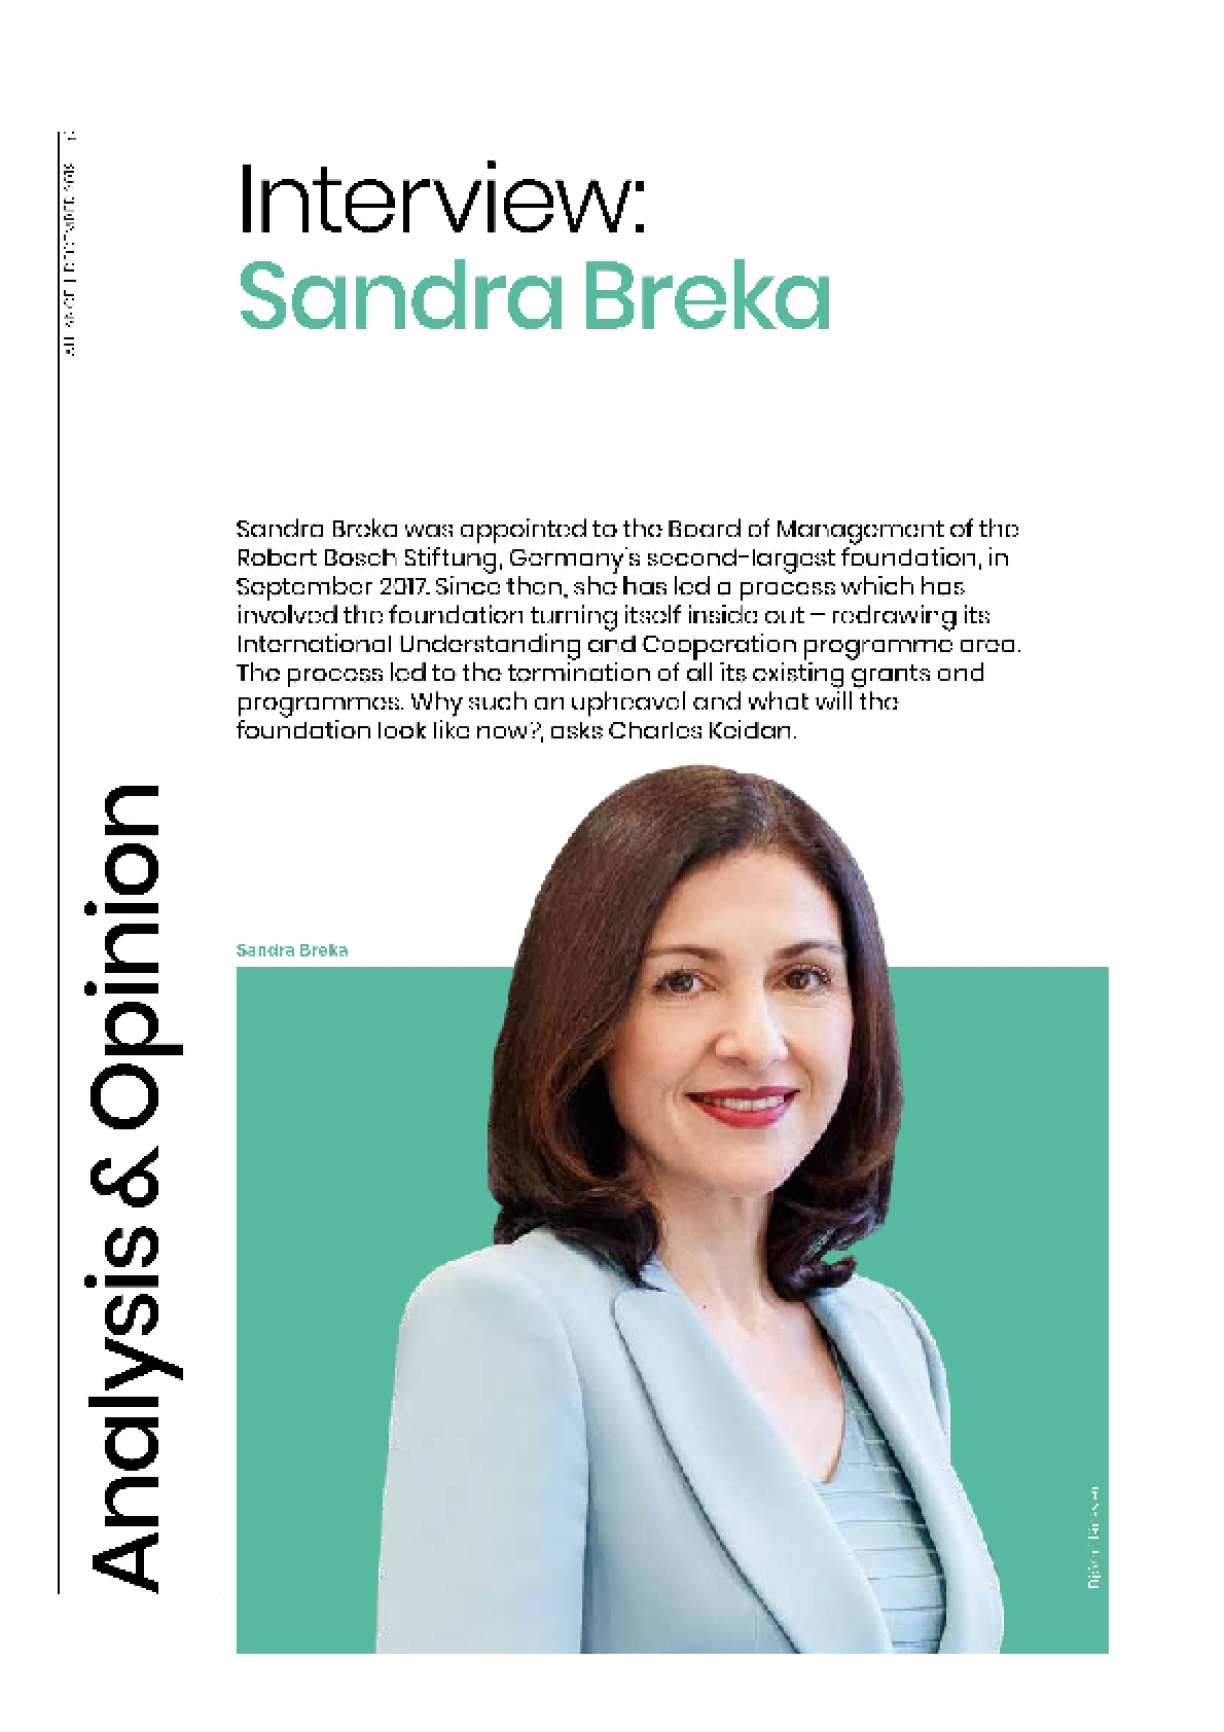 Interview: Sandra Breka - All change at Robert Bosch Foundation